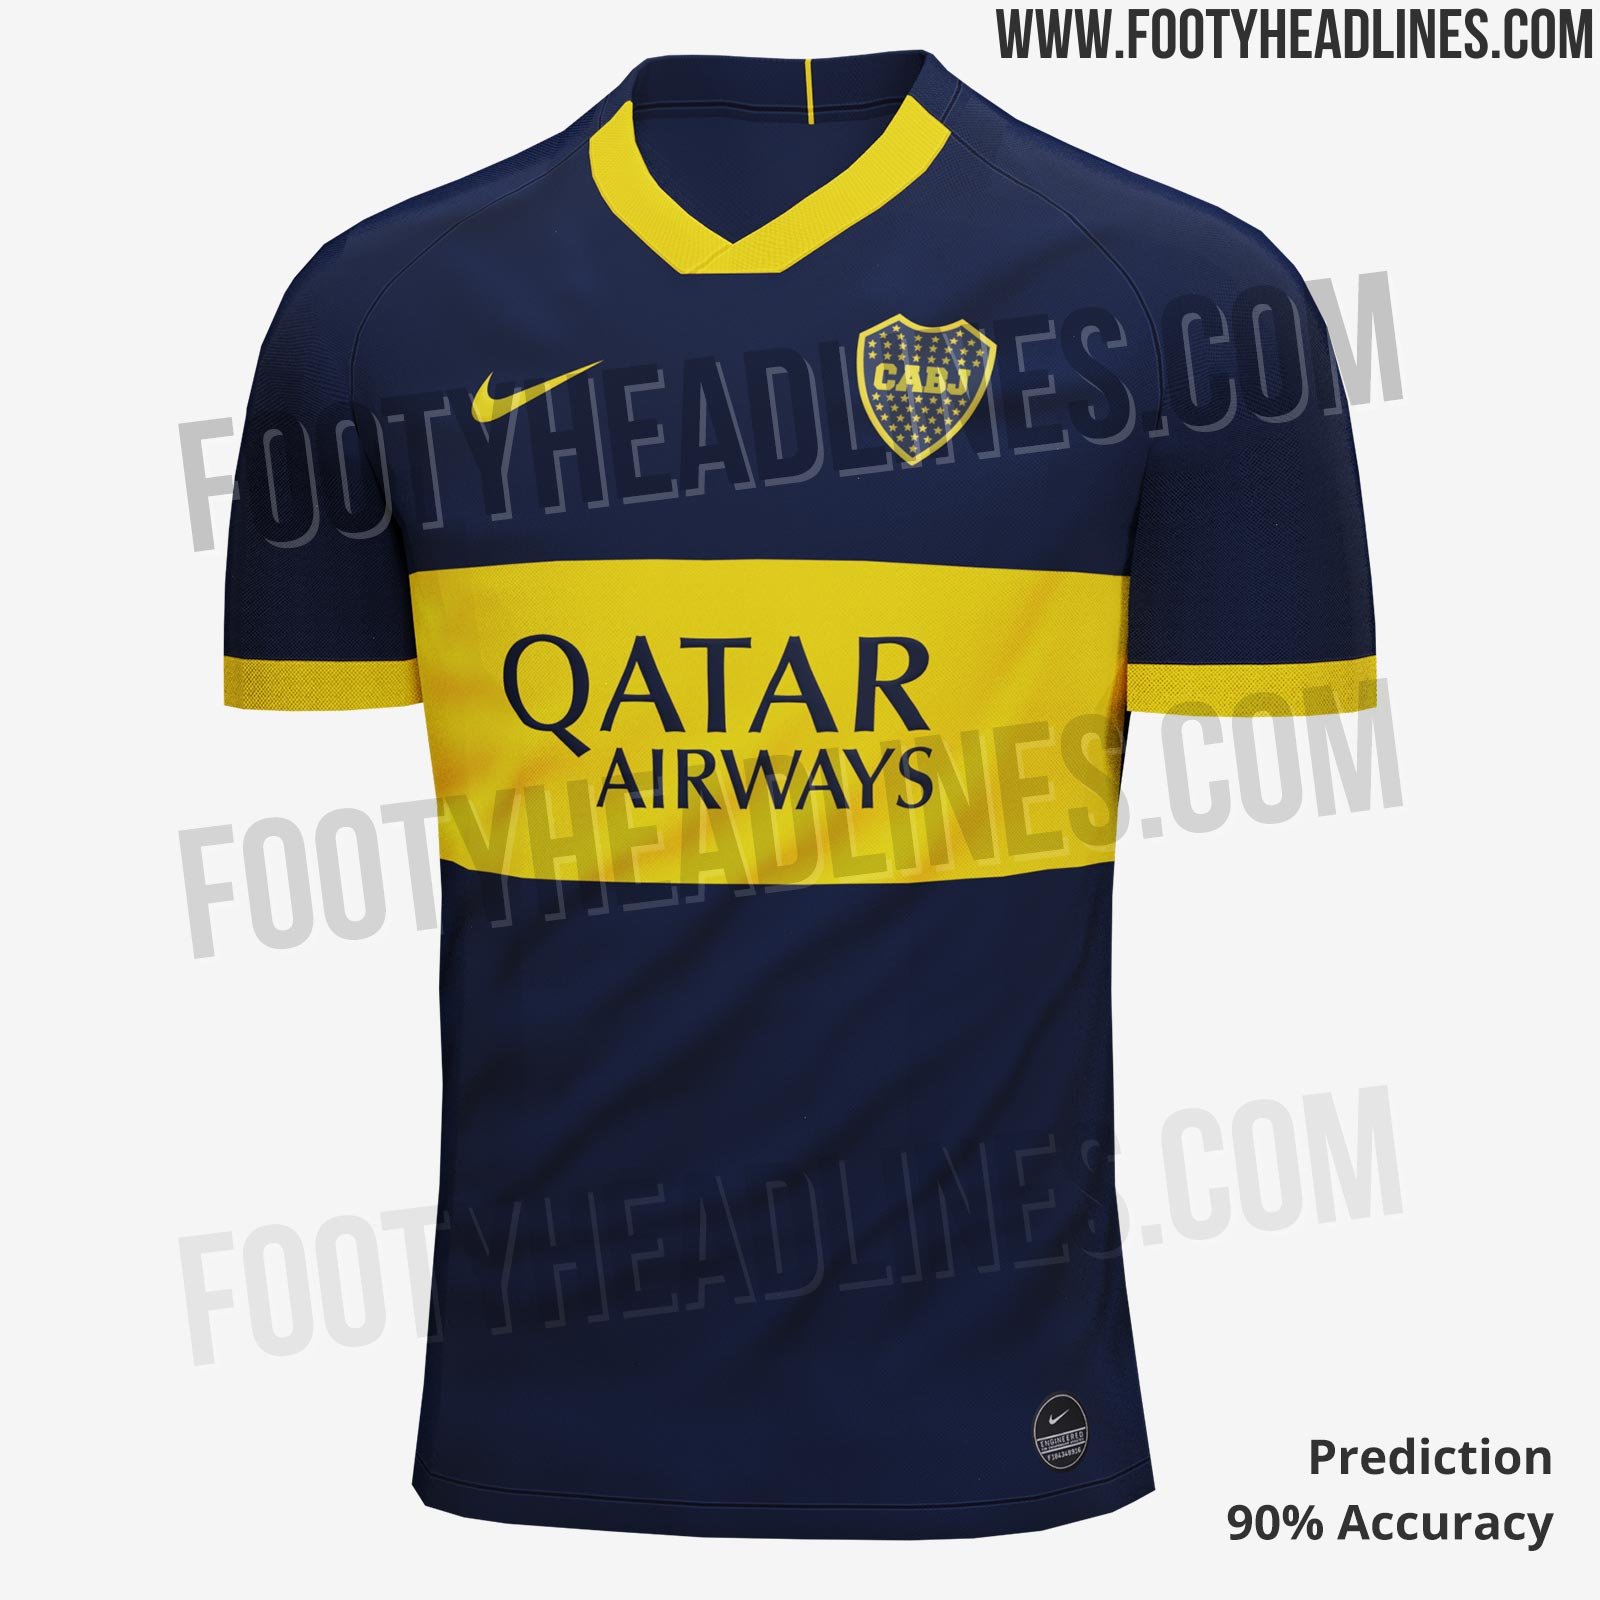 online retailer 19fdf 3315b Adidas From 2020?! Boca Juniors Wants Nike To Make Decision ...